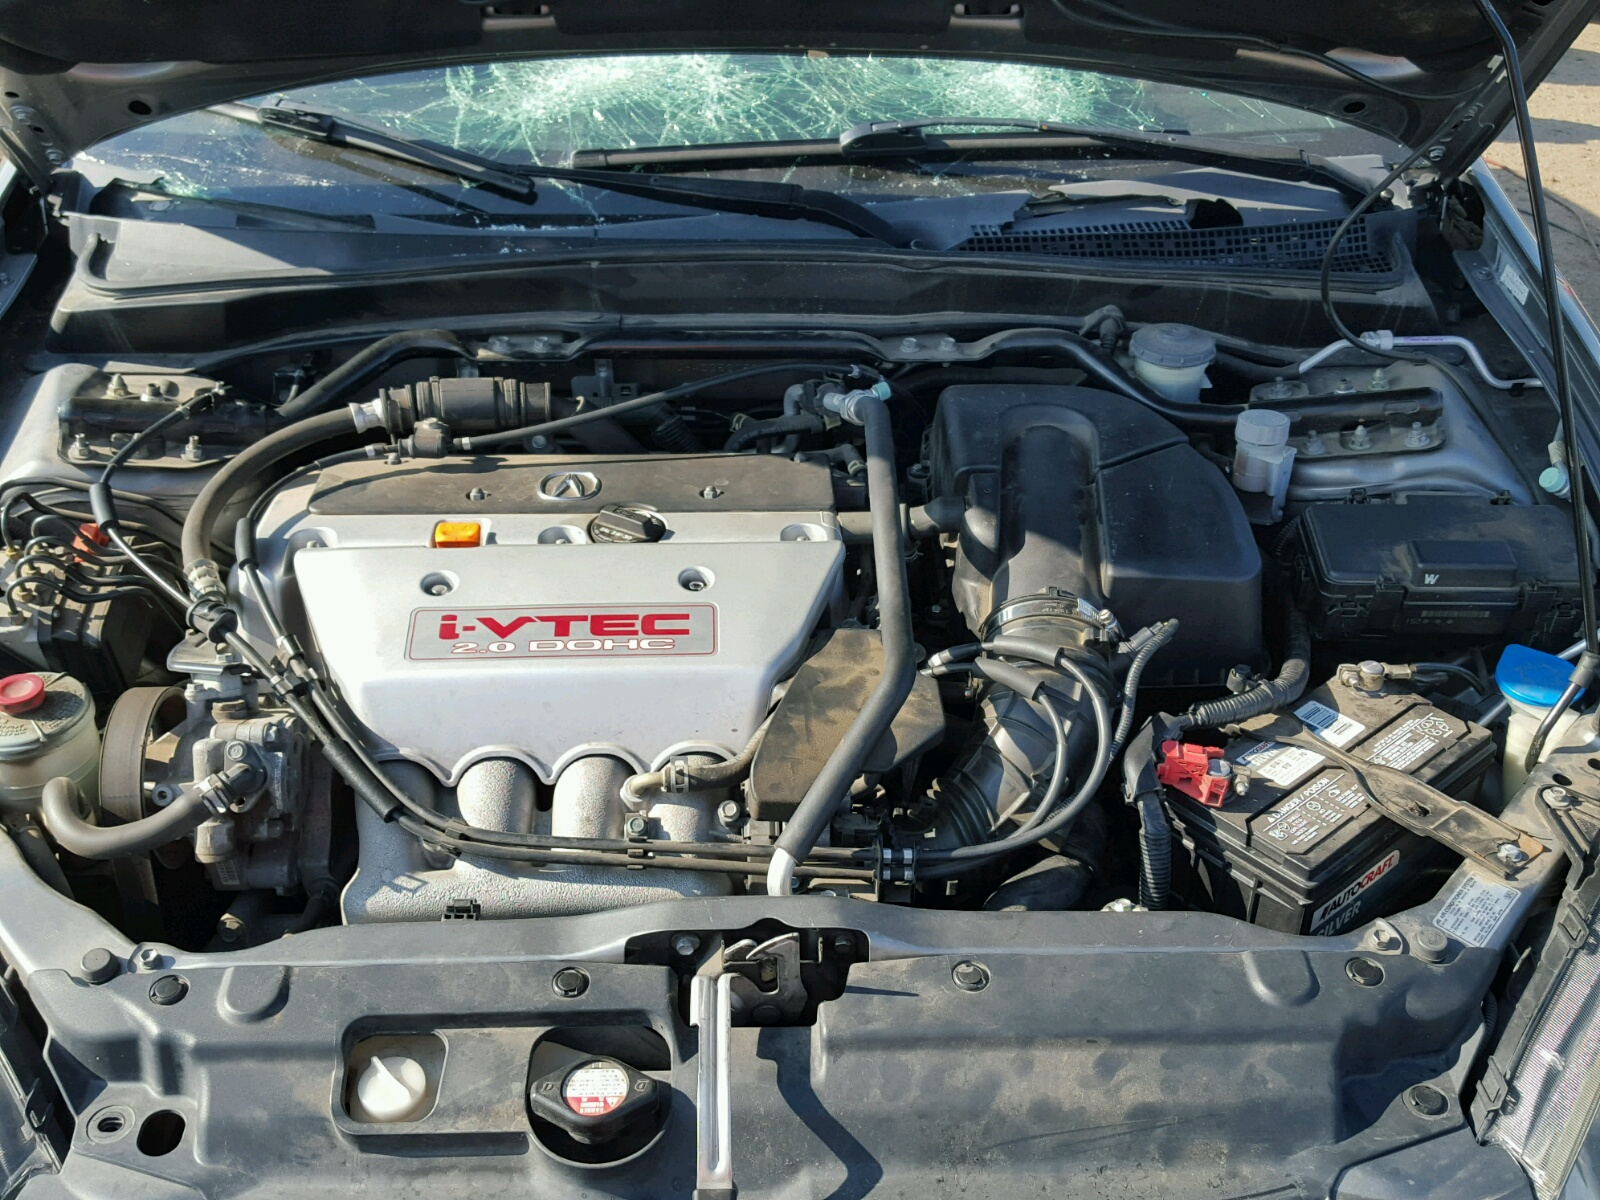 Acura RSX TYPES For Sale At Copart Colorado Springs CO Lot - 2006 acura rsx engine